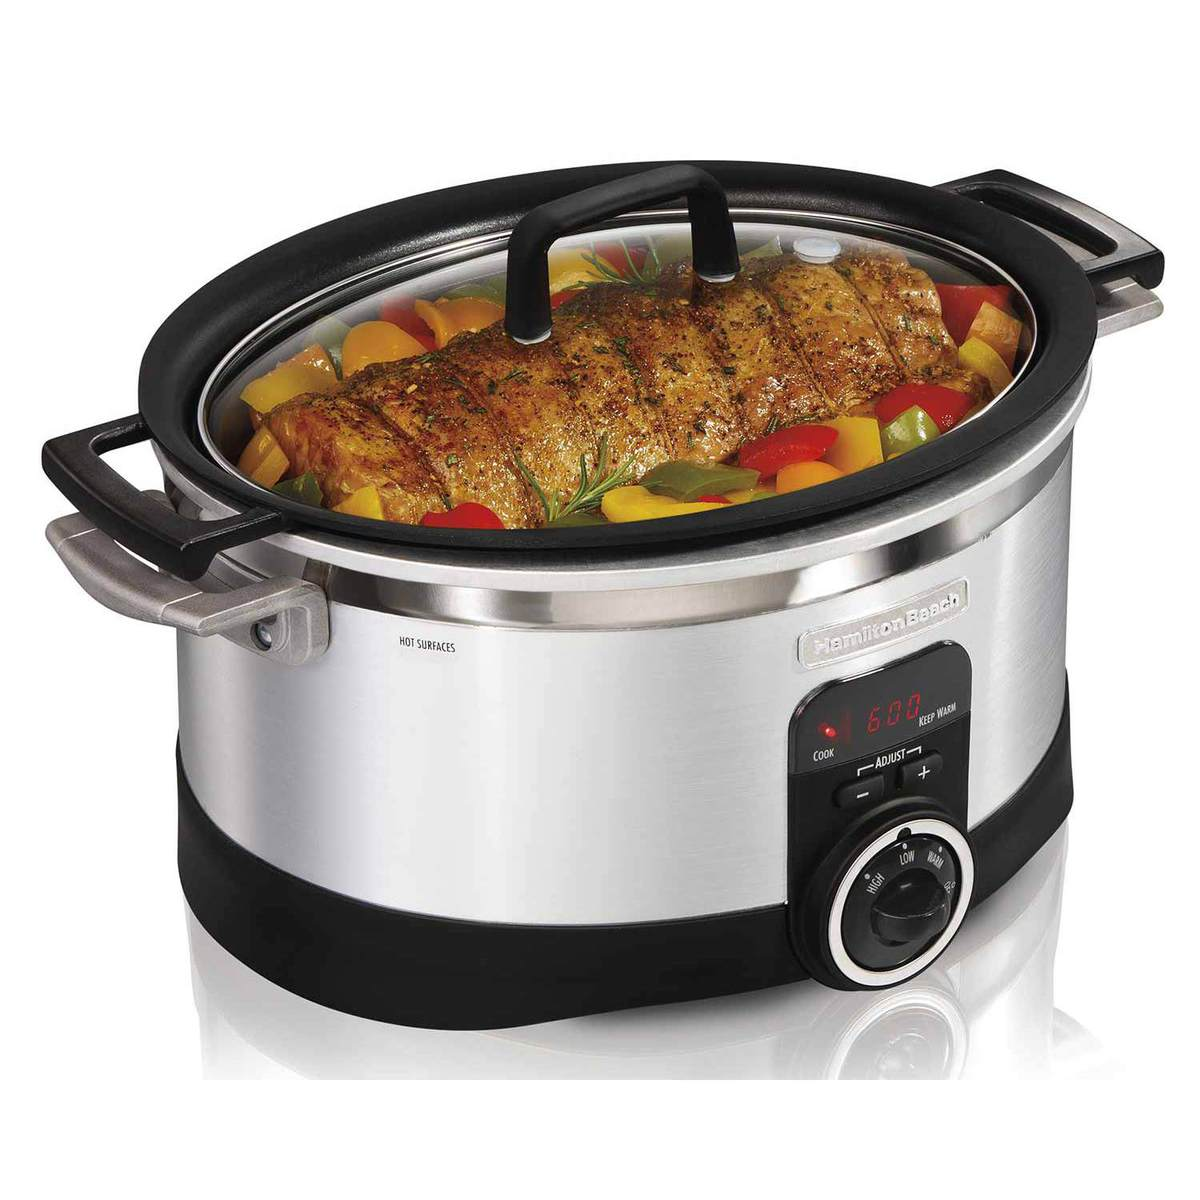 6 Quart Programmable Stovetop Slow Cooker (33567)